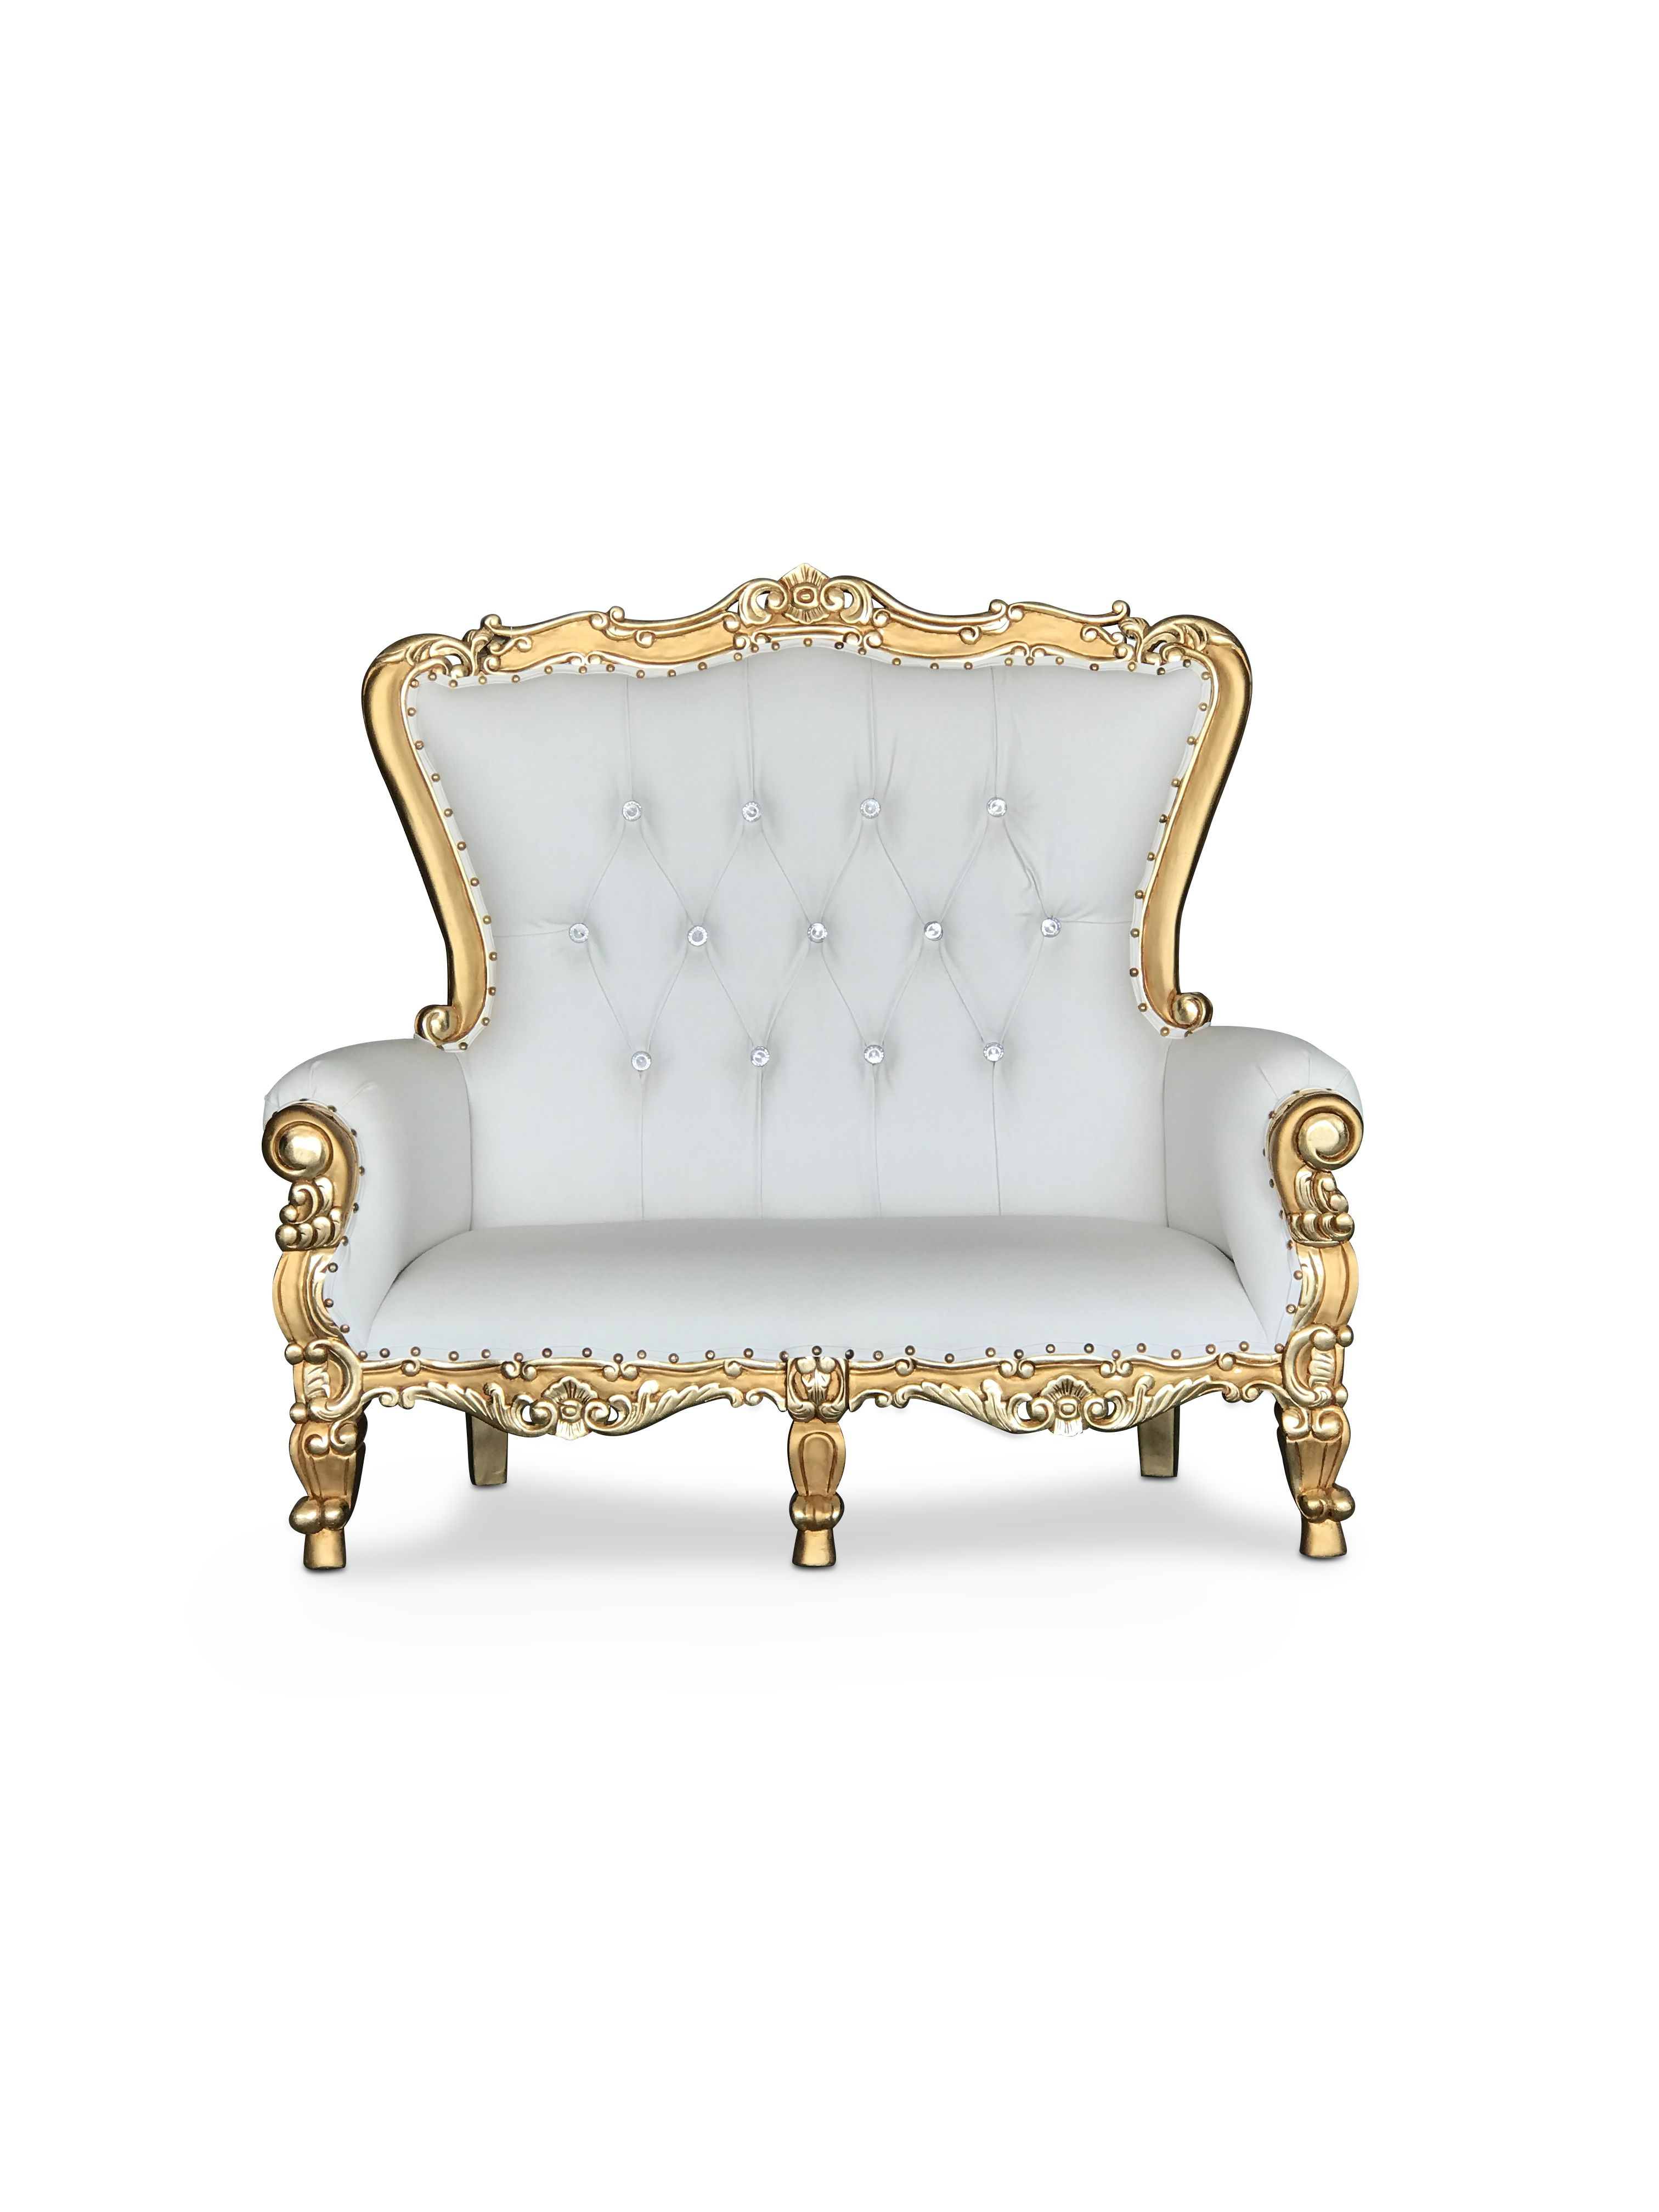 Sofa King Queen Kids Takhta Throne Settee 2018 Cp Collection In 2019 Throne